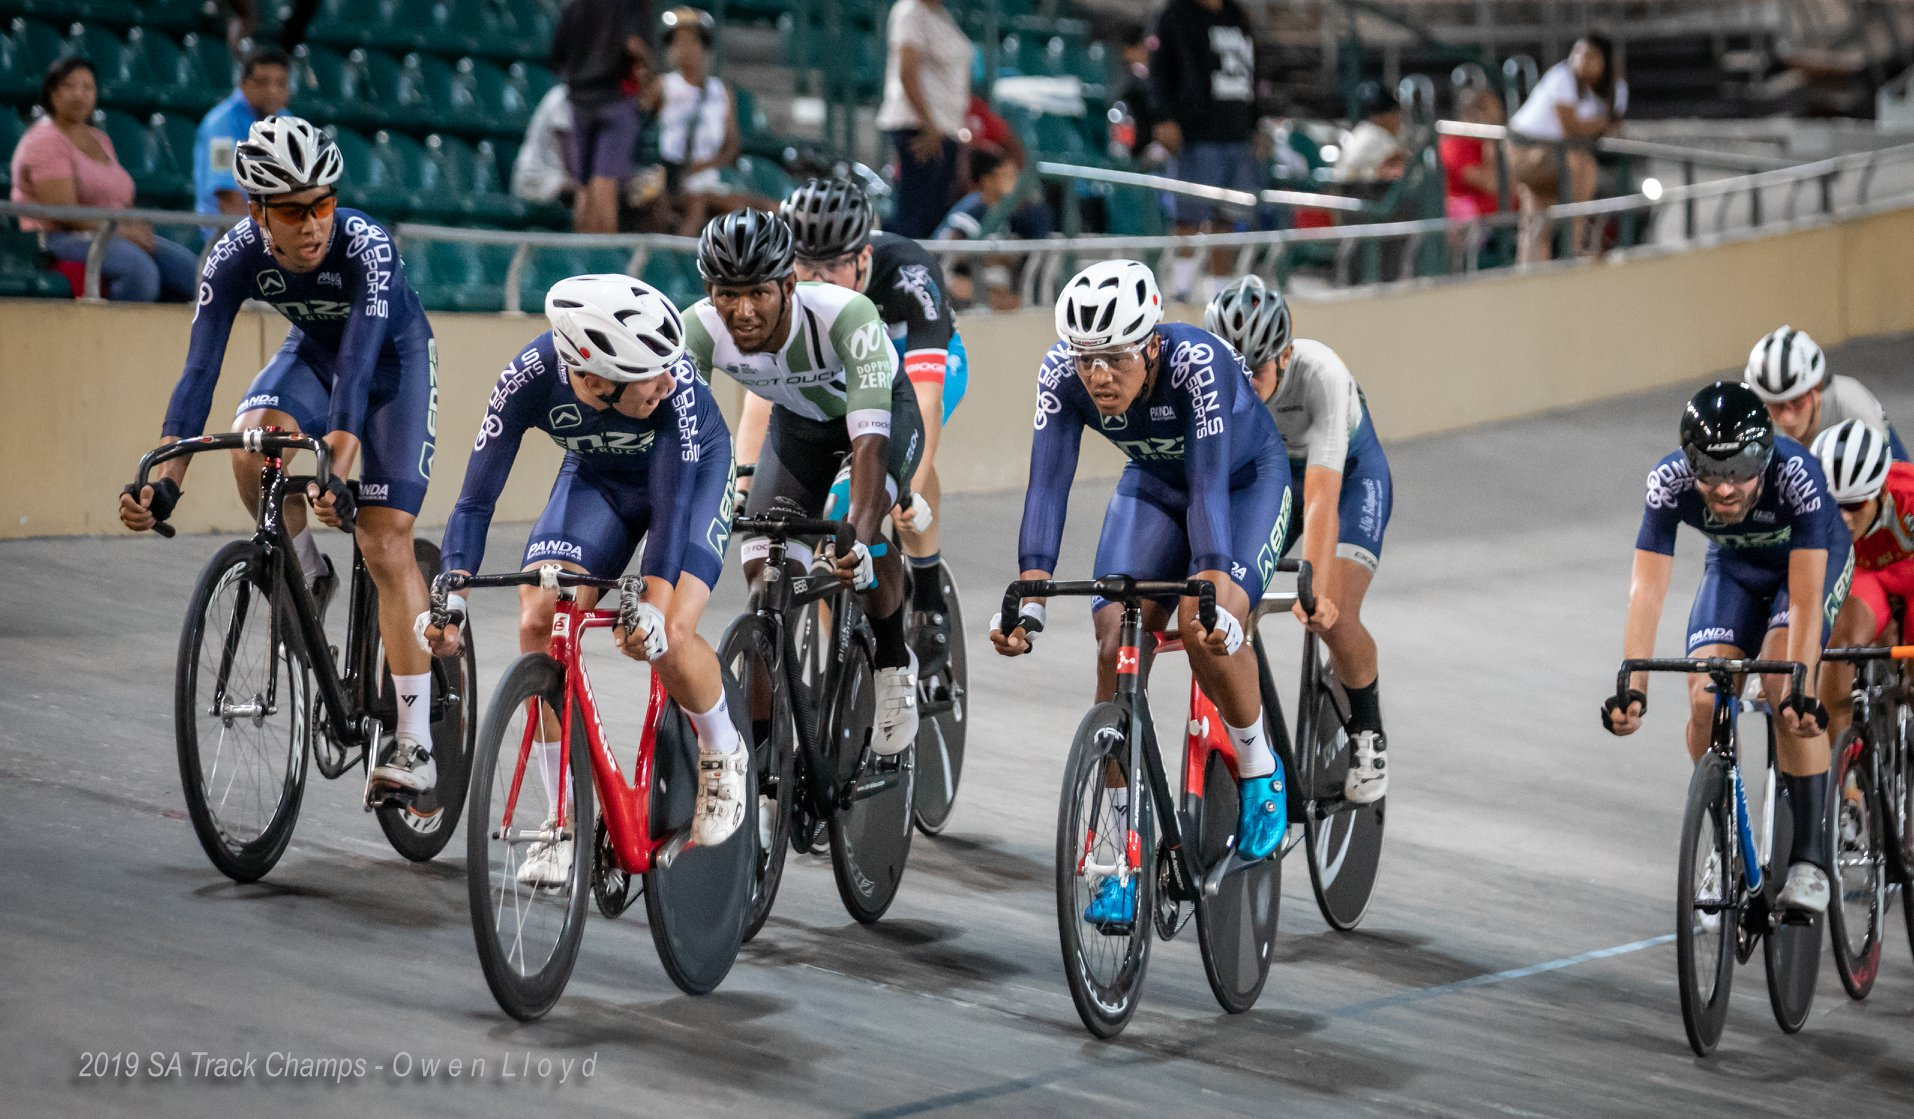 The Elite Men's Points Race was a star studded affair with the top riders in the country. Photo: Owen Lloyd